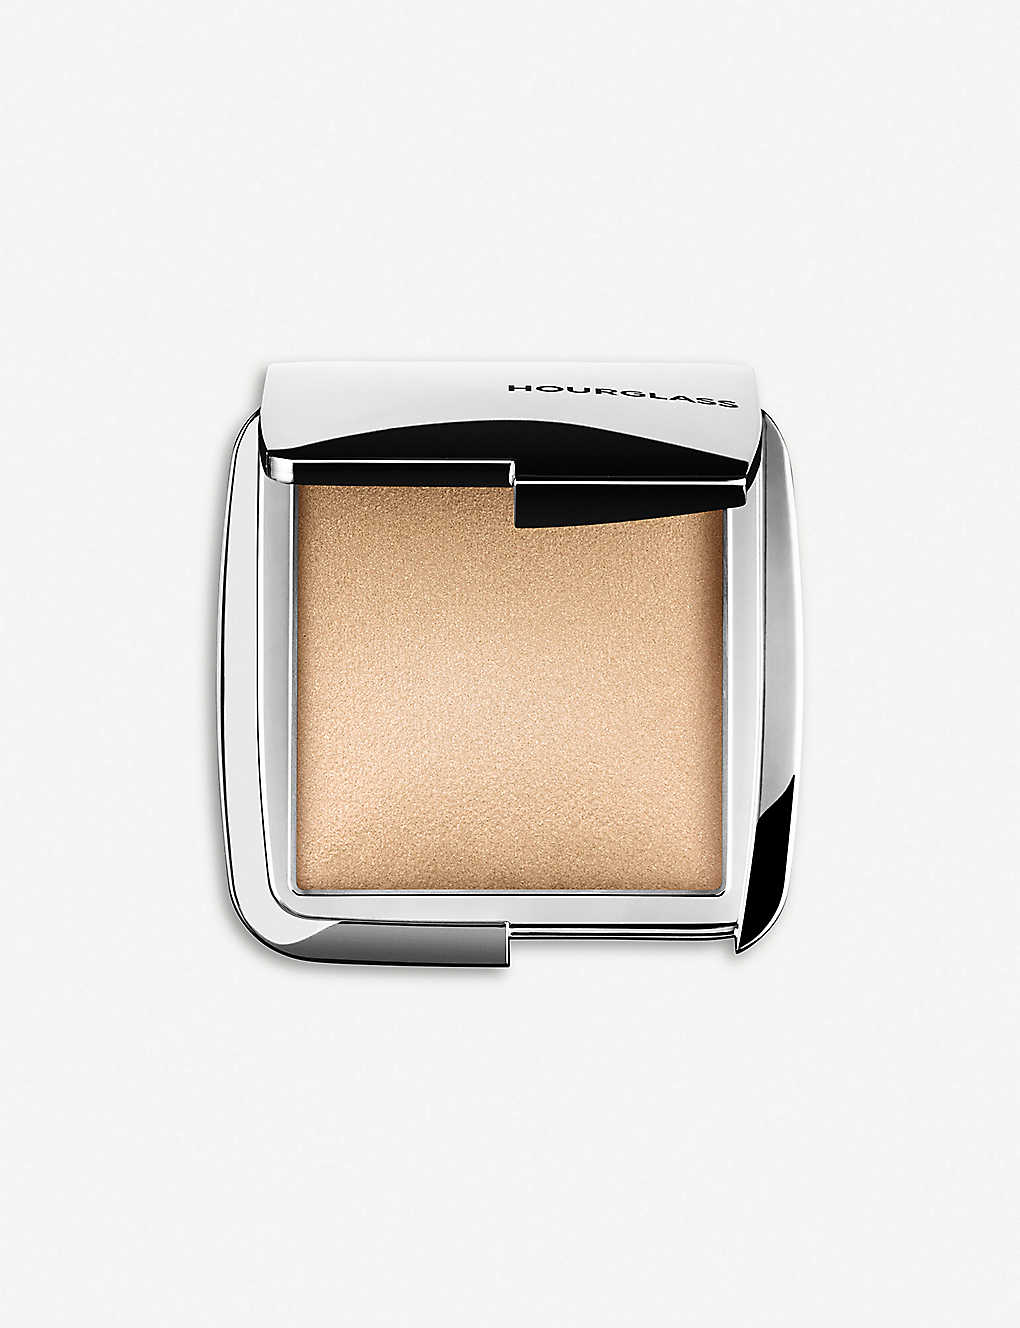 HOURGLASS: Ambient Strobe Lighting Powder 4.6g